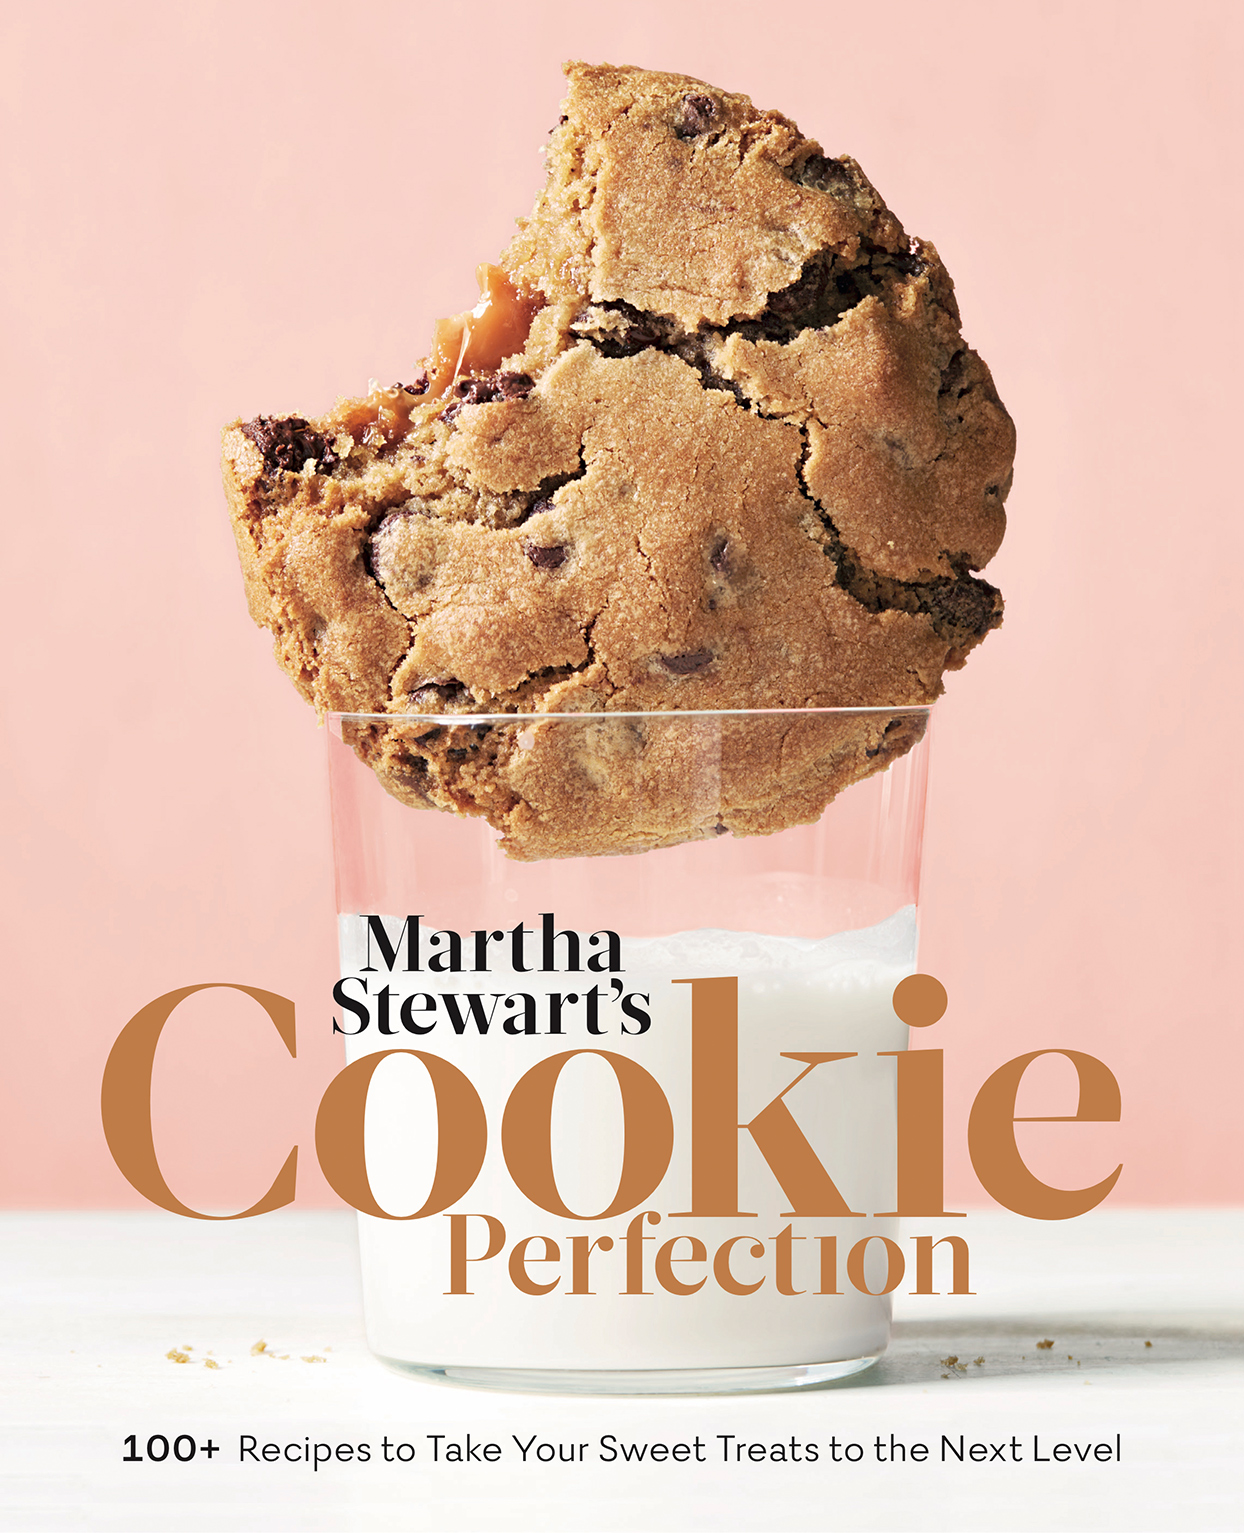 martha stewart's cookie perfection recipes